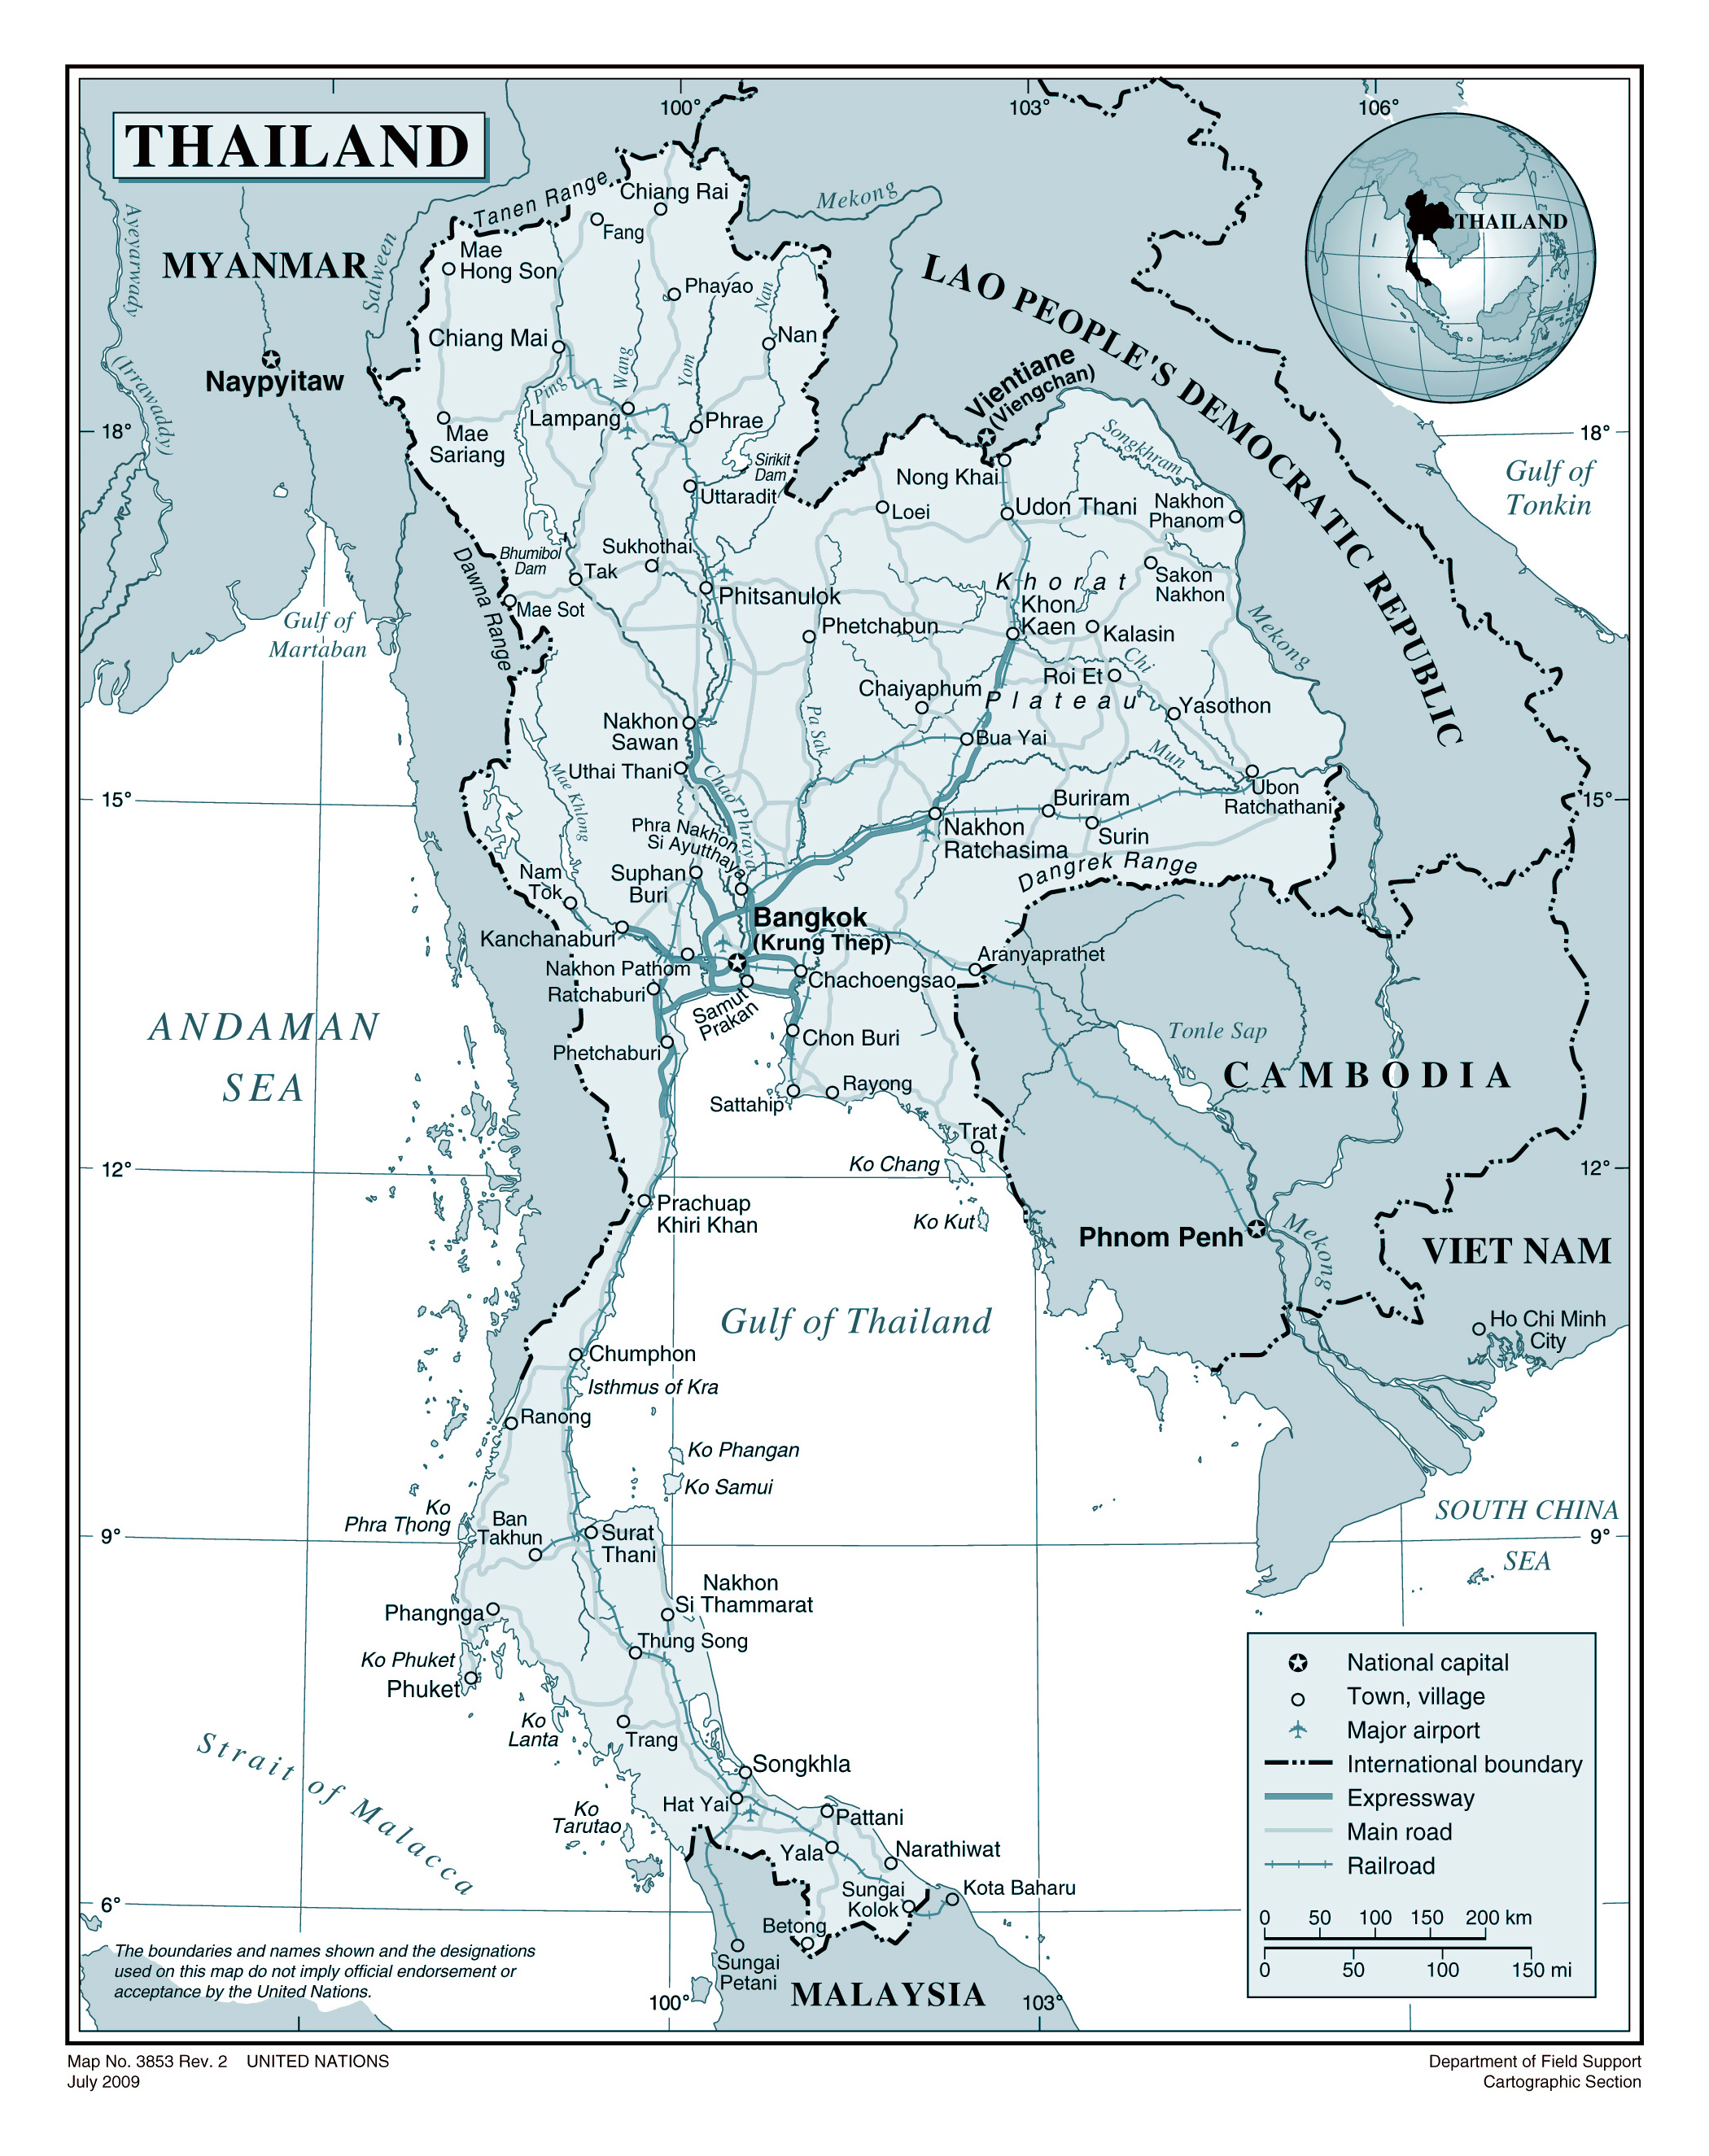 Large Detailed Political Map Of Thailand With Roads Railroads